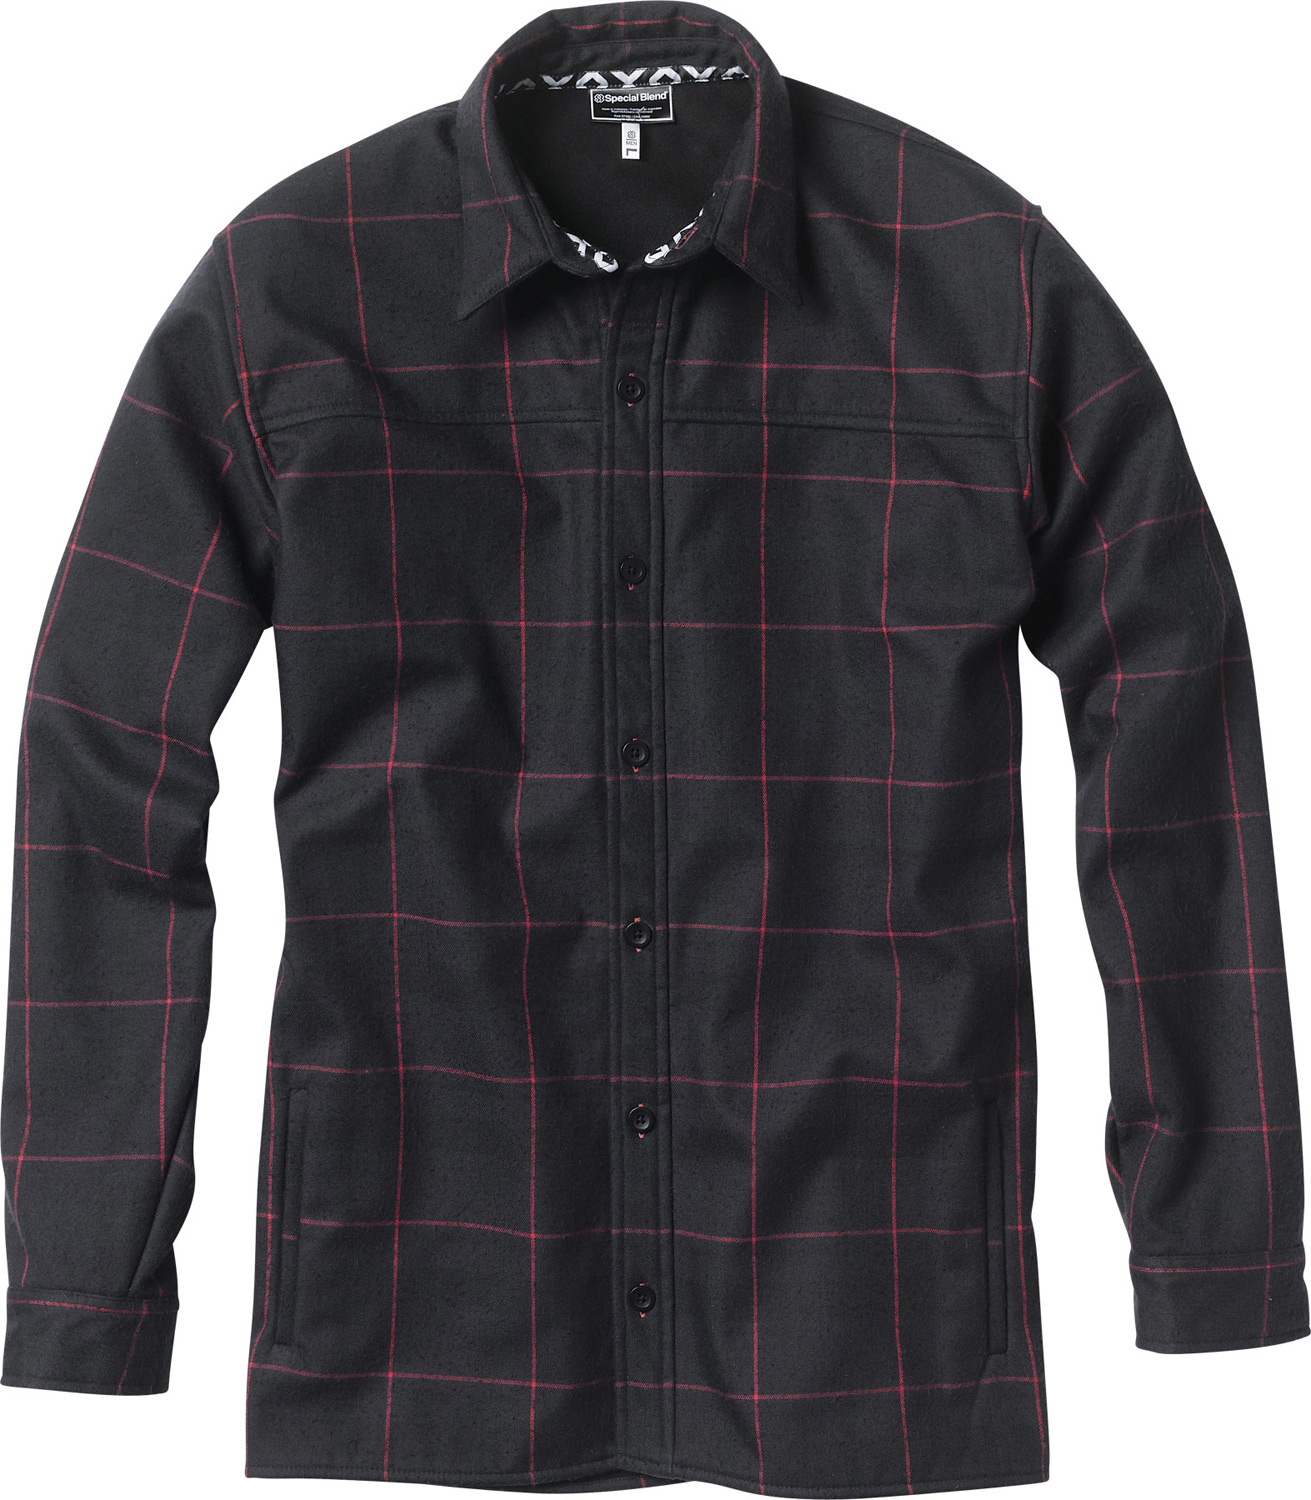 Key Features of the Special Blend Last Call Flannel Shirt: Bonded Flannel Revolver Slim Fit Wind-Resistant with DWR coating Yarn-dye custom flannel face fabric Brushed tricot lined hand-warmer pockets Chest pockets - $48.95